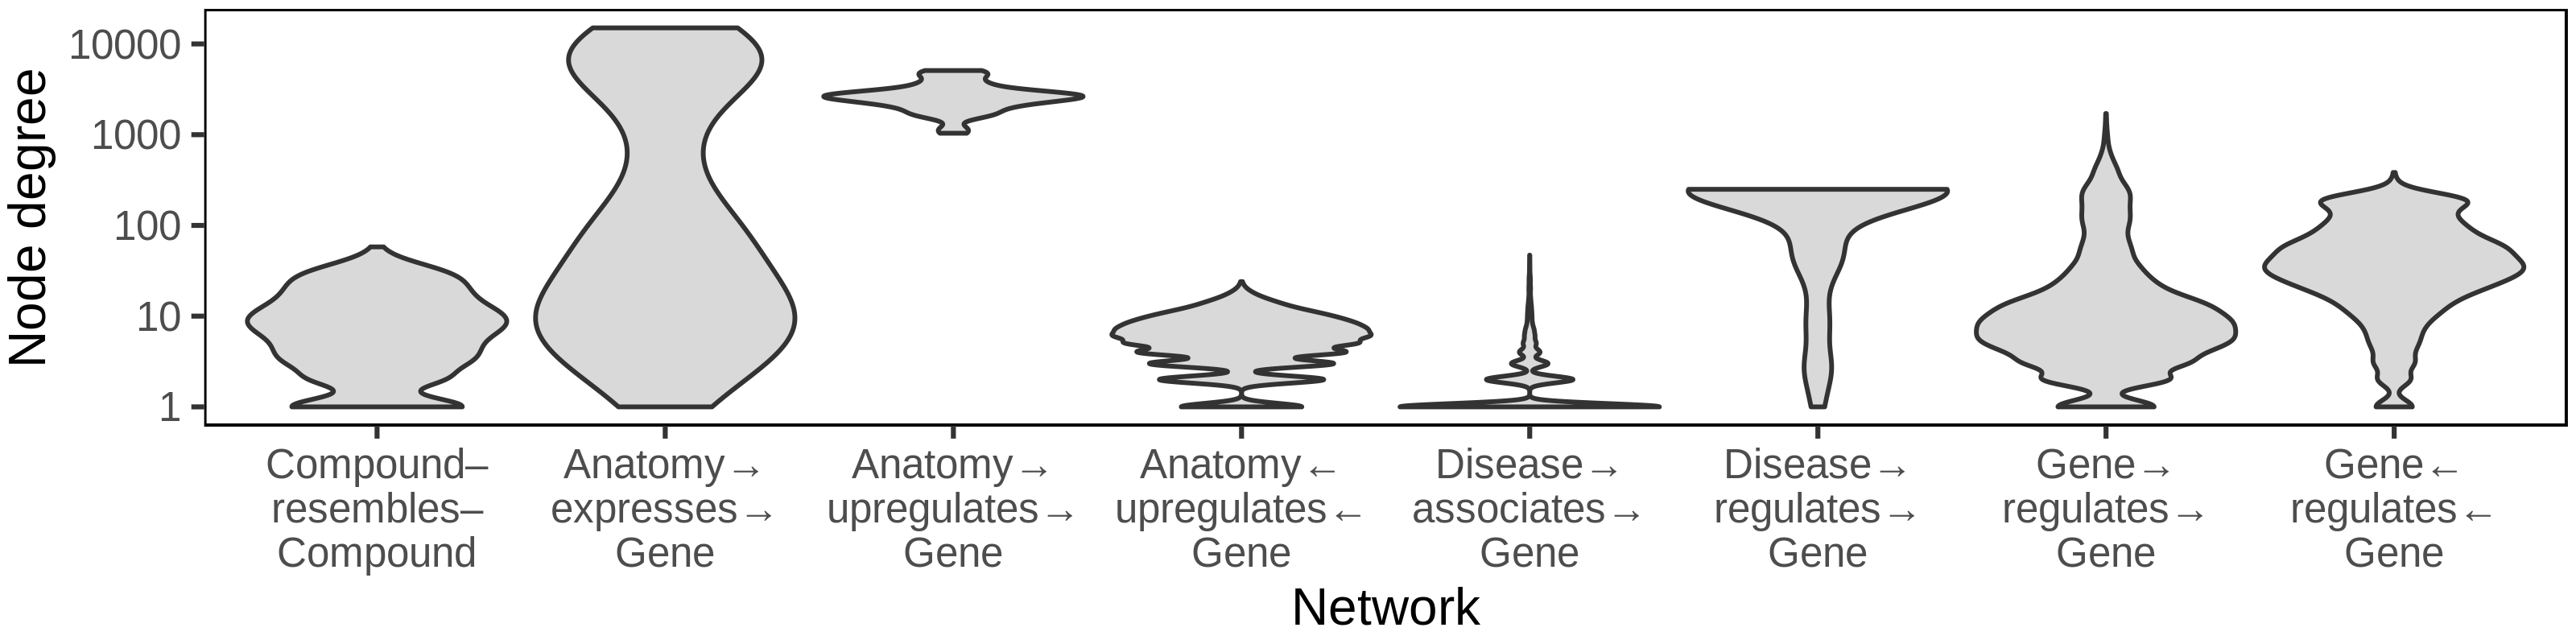 Figure 1: Biomedical networks are characterized by non-uniform degree distributions. Eight degree distributions are plotted for six edge types Hetionet v1.0 [4]. Hetionet integrates subnetworks for 24 different edge types, the degree distributions of which are analyzed separately. Furthermore, bipartite (e.g.Anatomy→expresses→Gene) and directed (e.g.Gene→regulates→Gene) edge types have both source and target degrees that must be assessed separately. Undirected edge types (e.g Compound–resembles–Compound) have only a single degree distribution. Degree distributions are non-uniform and vary greatly between different networks. The y-axis is log10-scaled to accomodate the common occurrence where most nodes have low degree while a small portion of nodes have high degree. Several distributions have node degree ceilings corresponding to a node being connected to all other possible nodes. Zero-degree nodes are not displayed, since methodological limitations often result in edge data only existing for a subset of nodes.